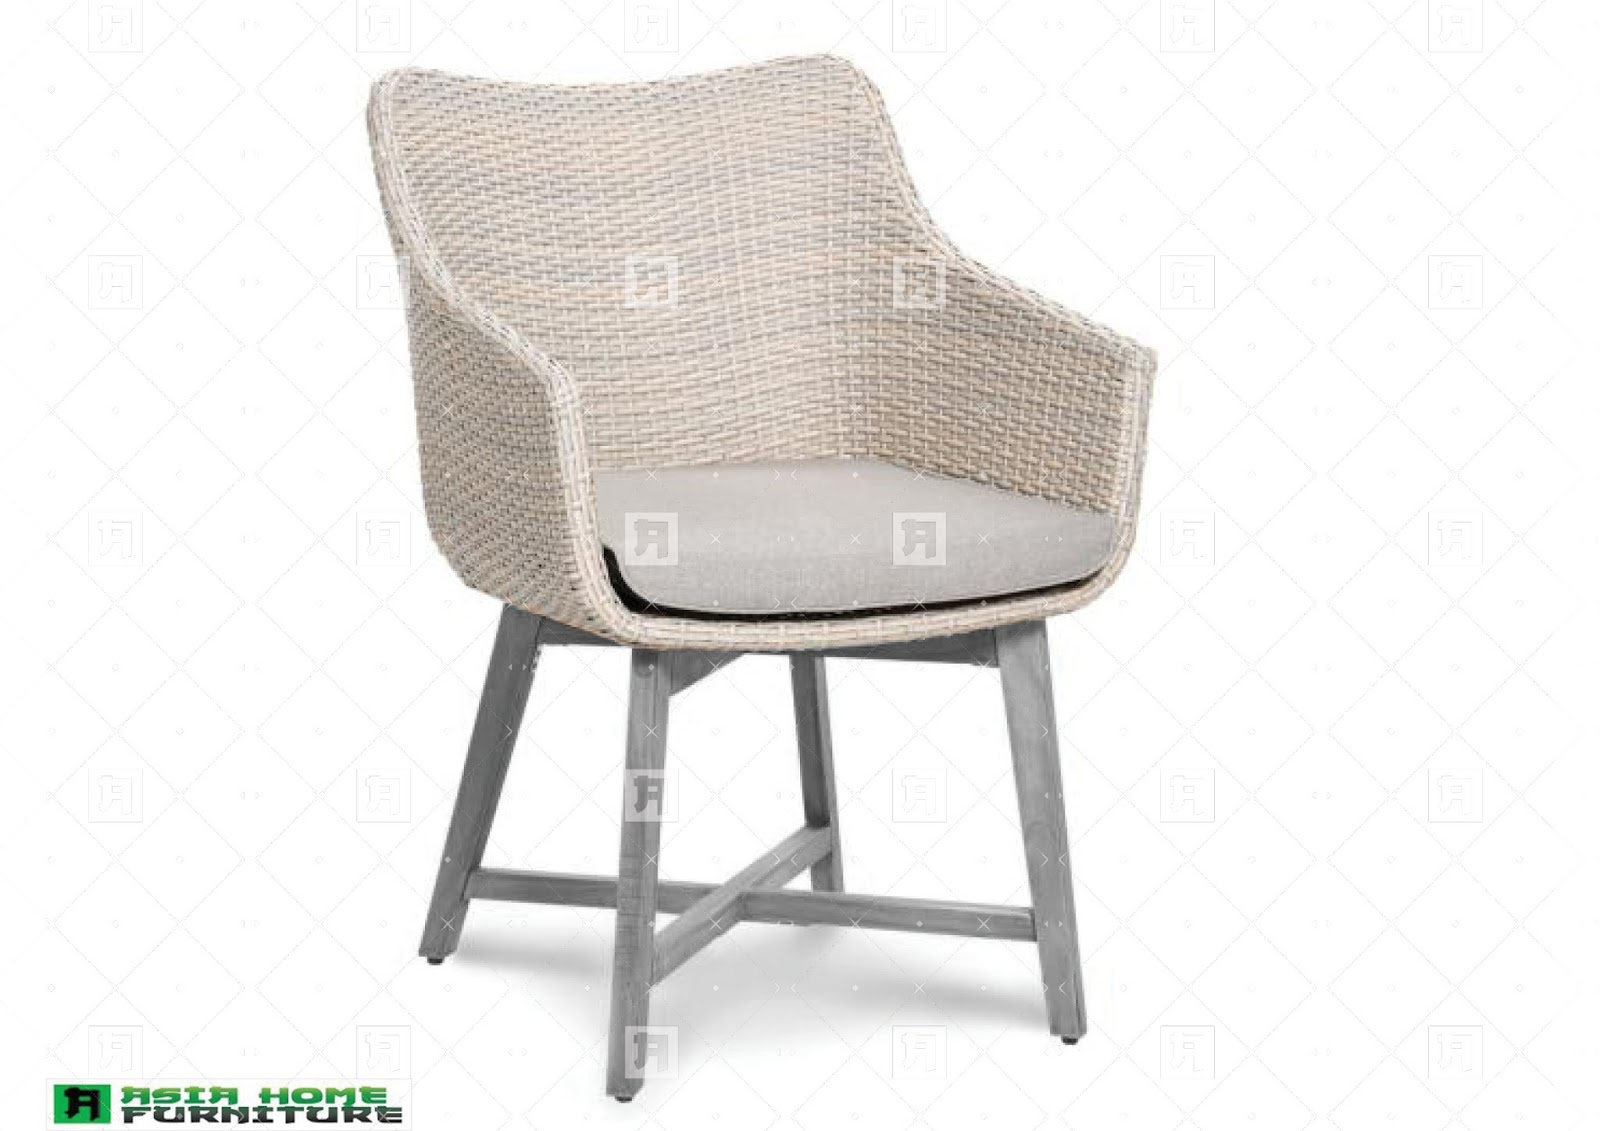 Chairs furnitures